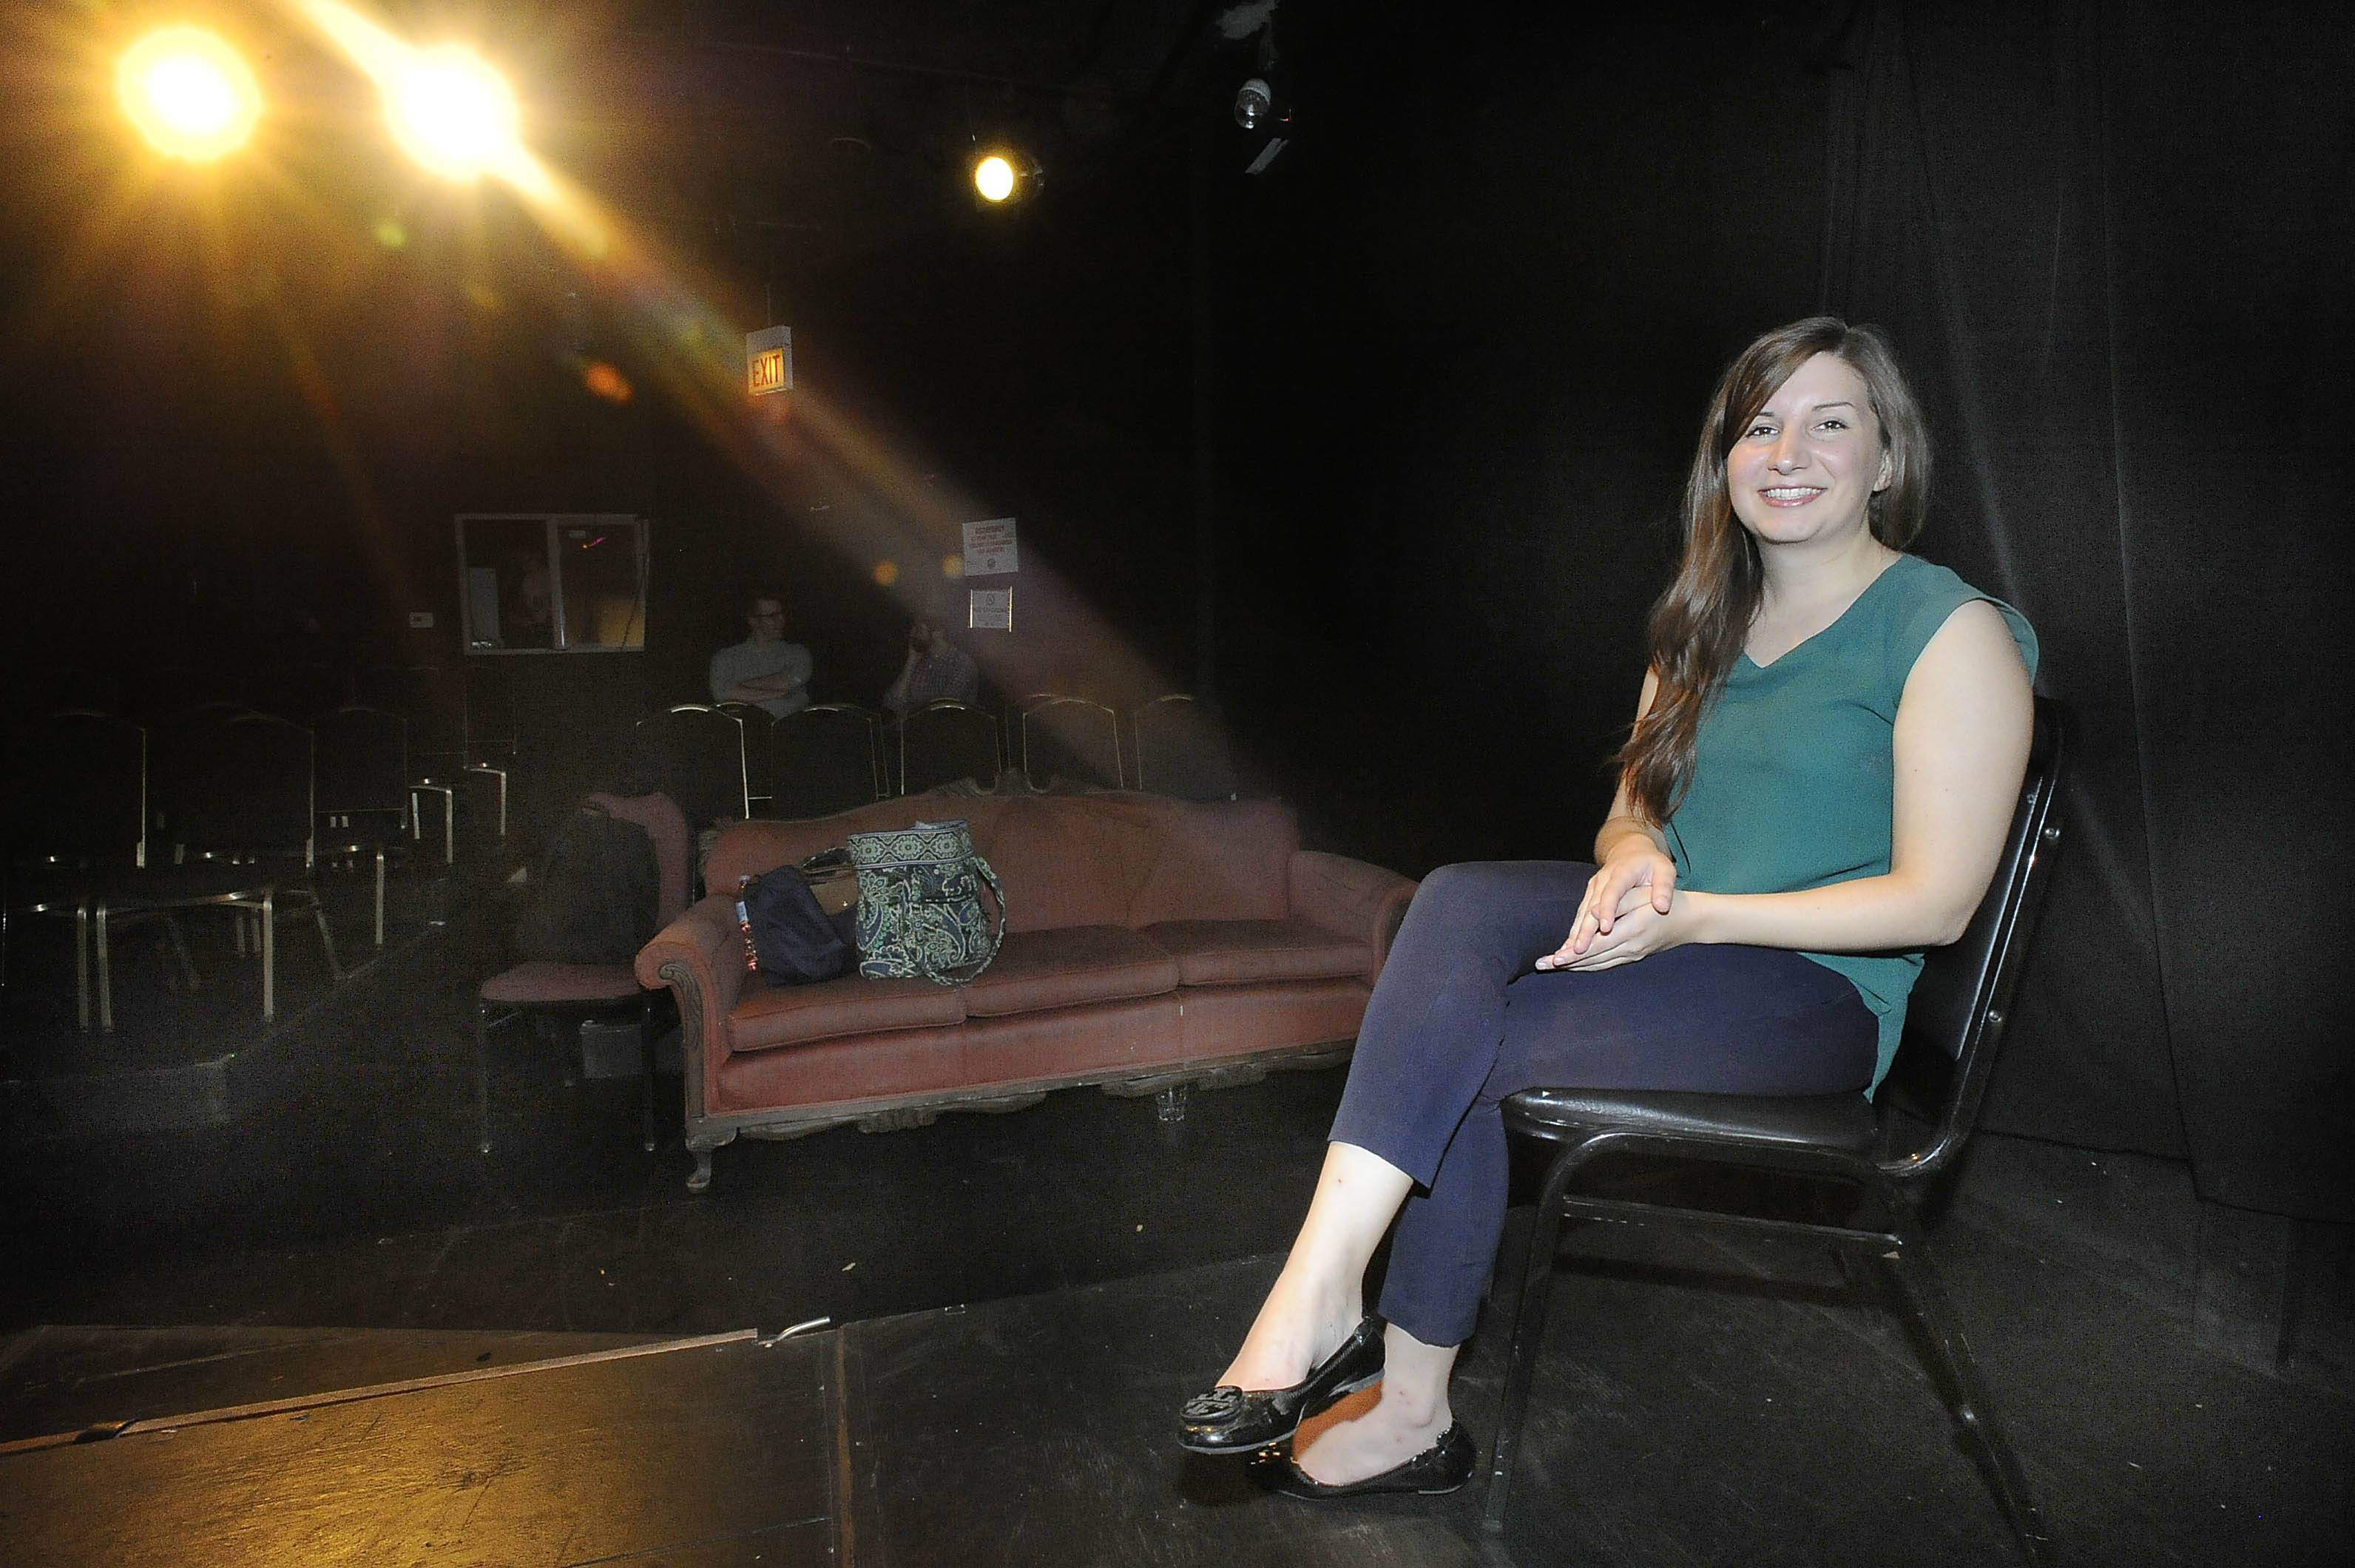 Introverted and too tired to play during her grueling treatment for leukemia when she was a child, Lisa Mongillo did a lot of reading and writing. Now, the 25-year-old Second City-trained Arlington Heights native writes comedy and performs in a show at the Public House Theatre in Chicago.